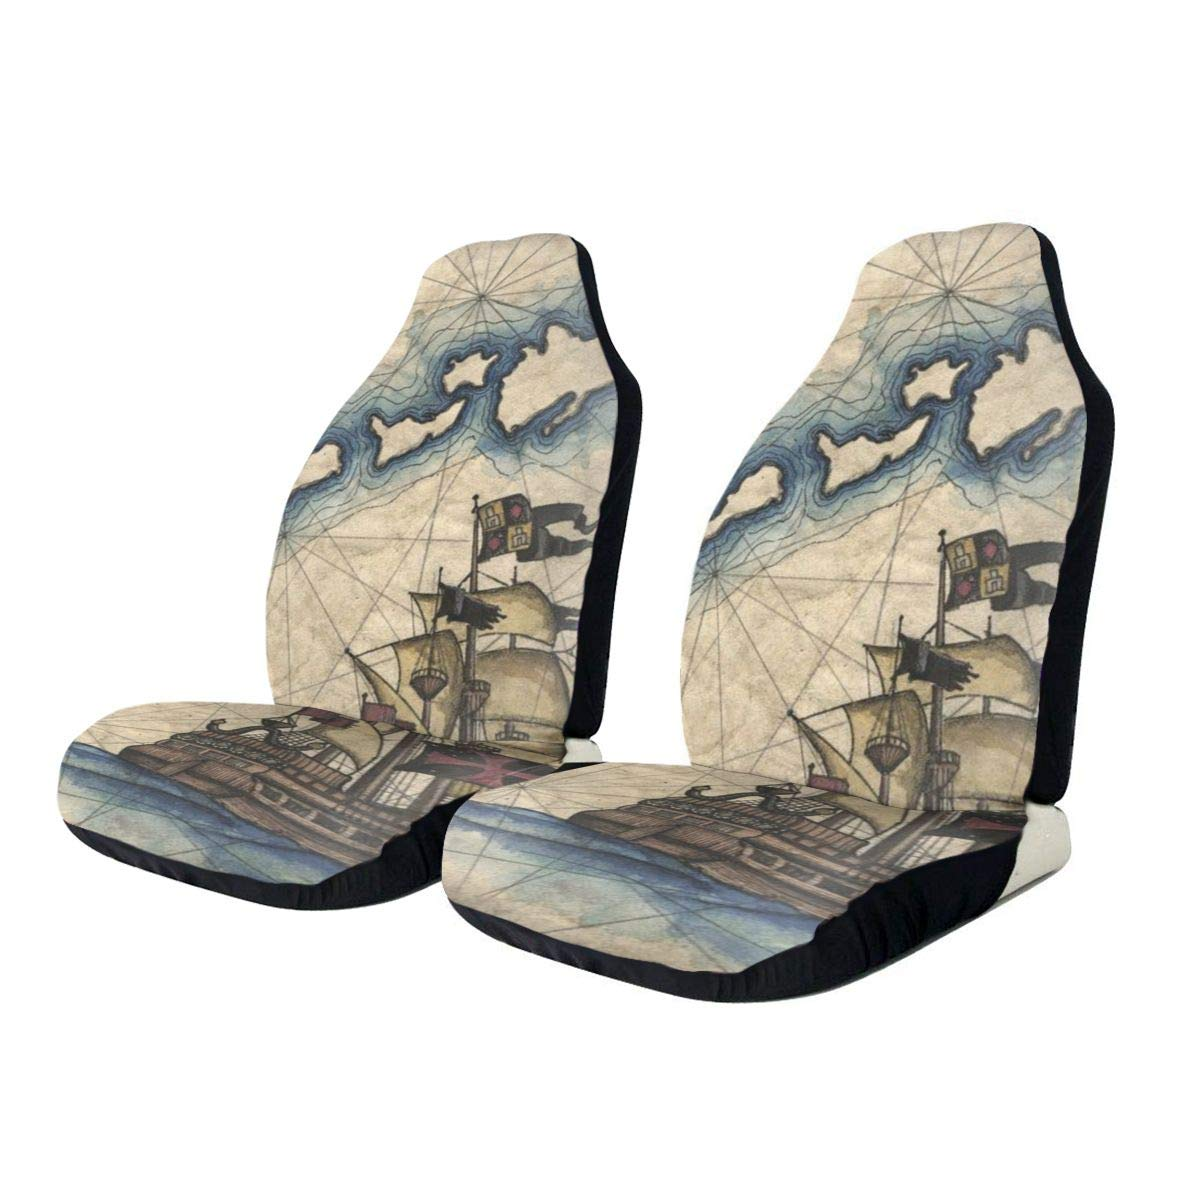 Car Seat Covers Nautical Captain Sailboat Pirate Map Front Automotive Seat Covers Breathable Anti Slip Car Seat Cushion With Back Storage Bag Universal Car Seat Protector For Cars Trucks & SUVs 2 PCS